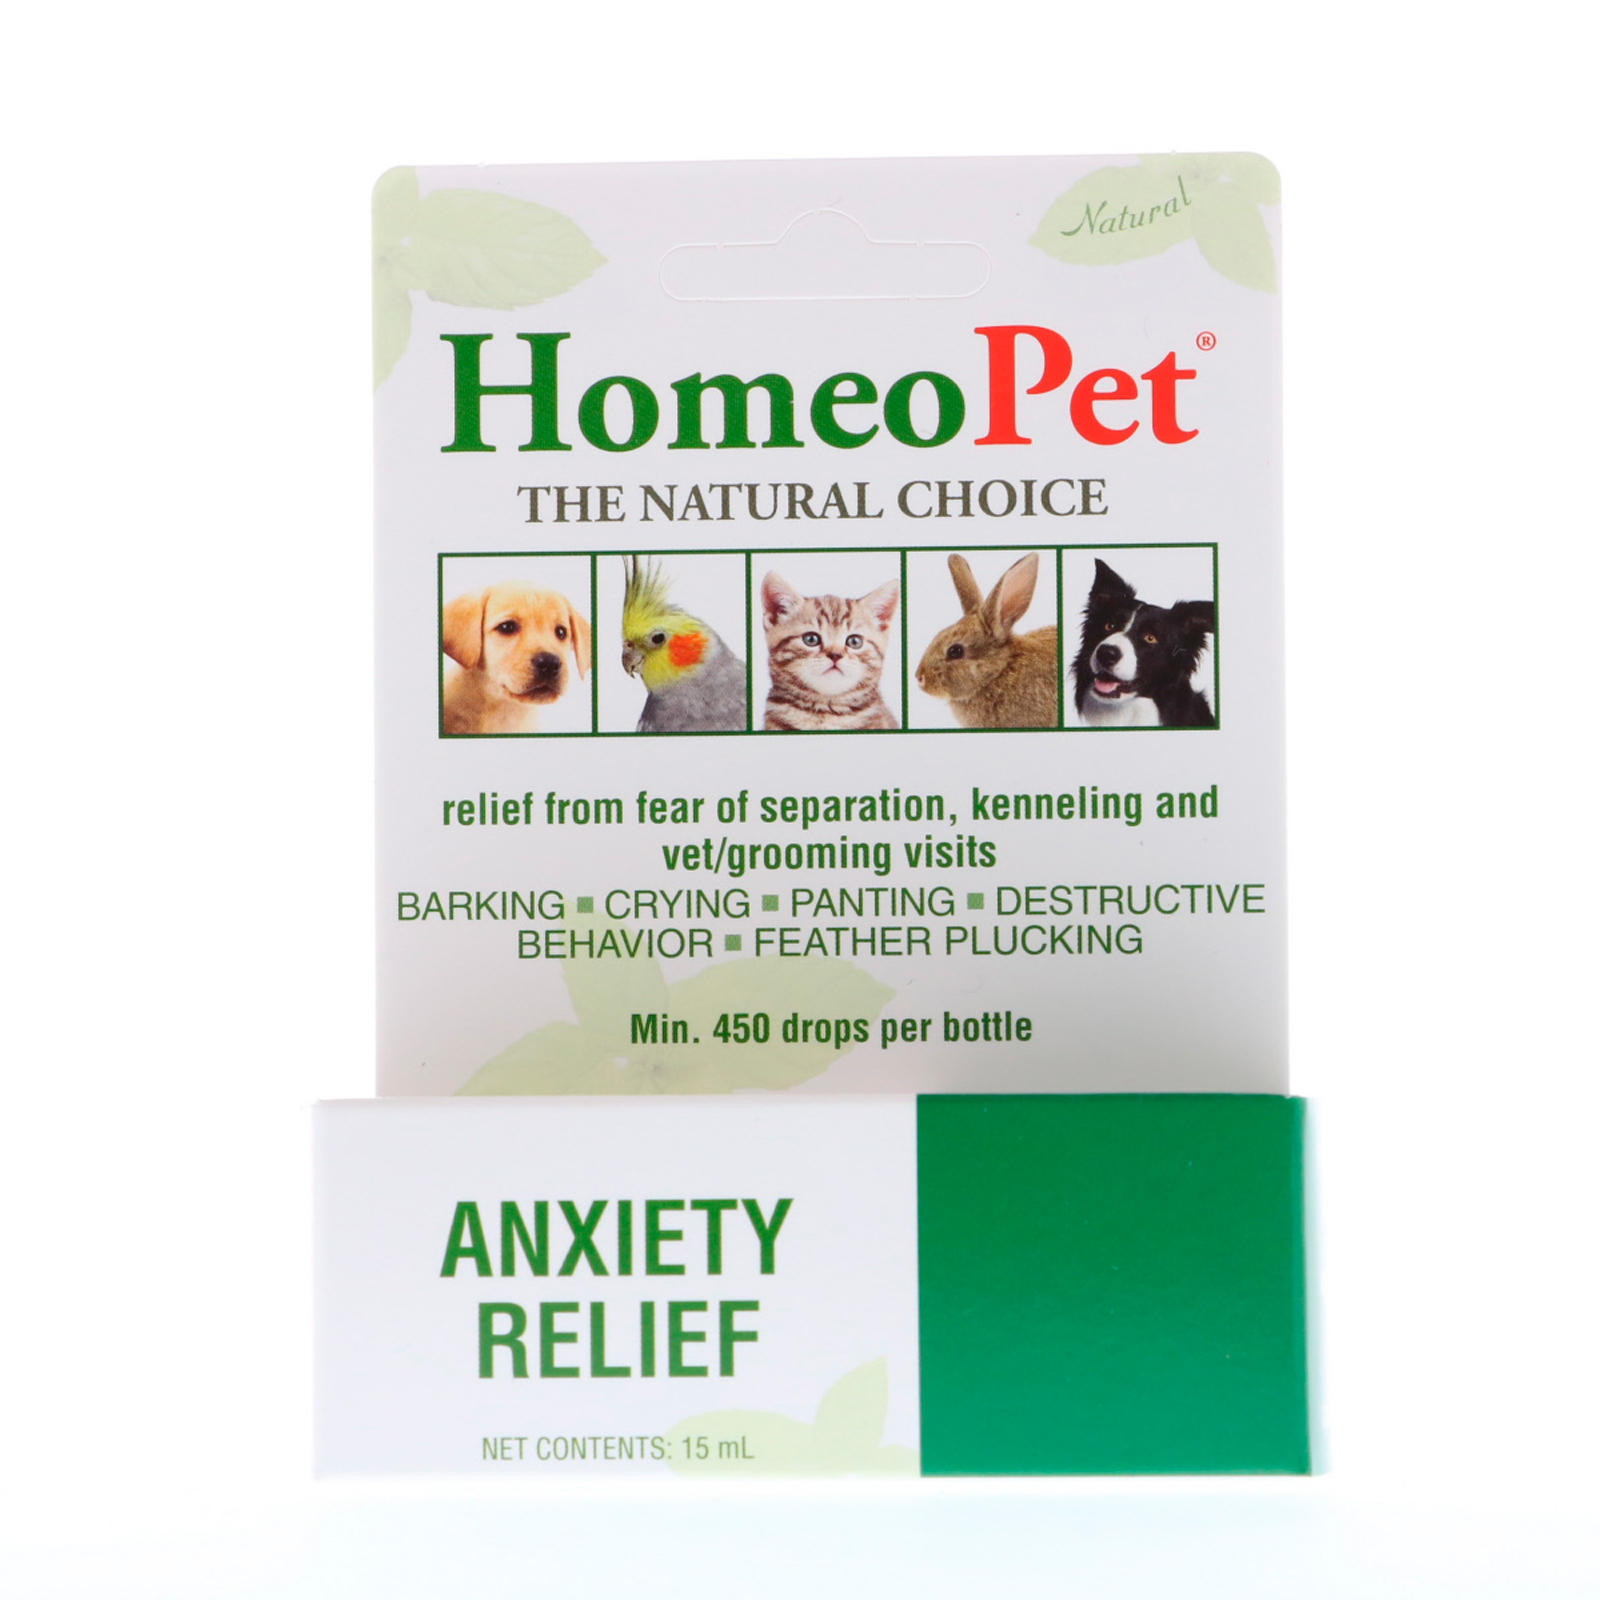 HomeoPet Anxiety Relief 15 ml - Walmart.com - Walmart.com